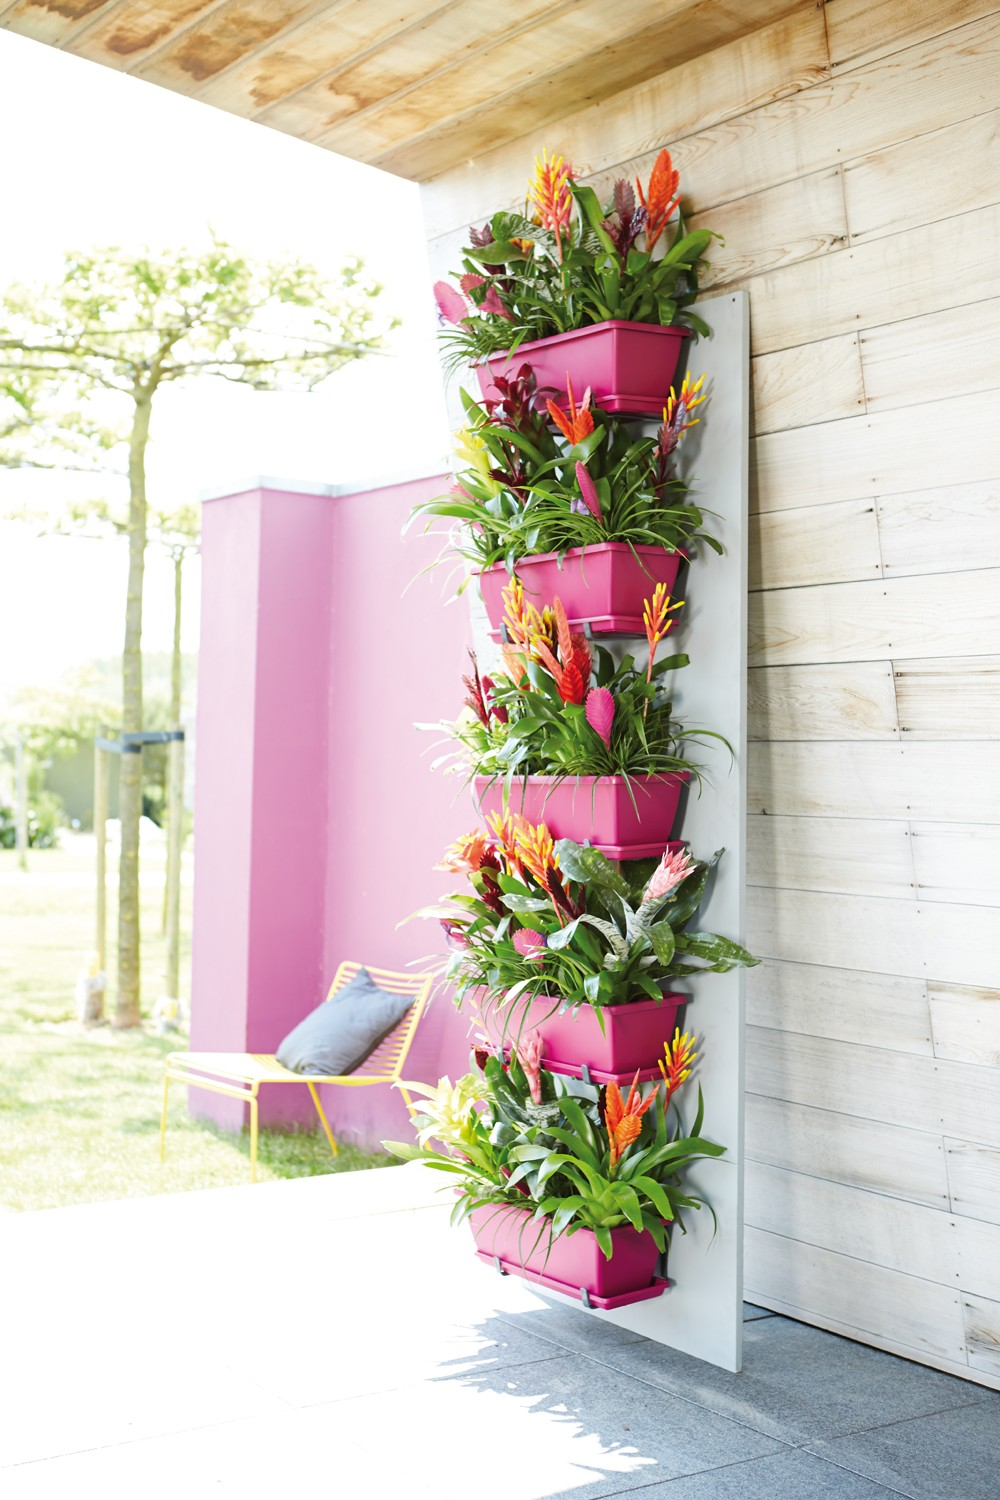 20 Awesome Vertical Garden Ideas That Will Change The Way ...